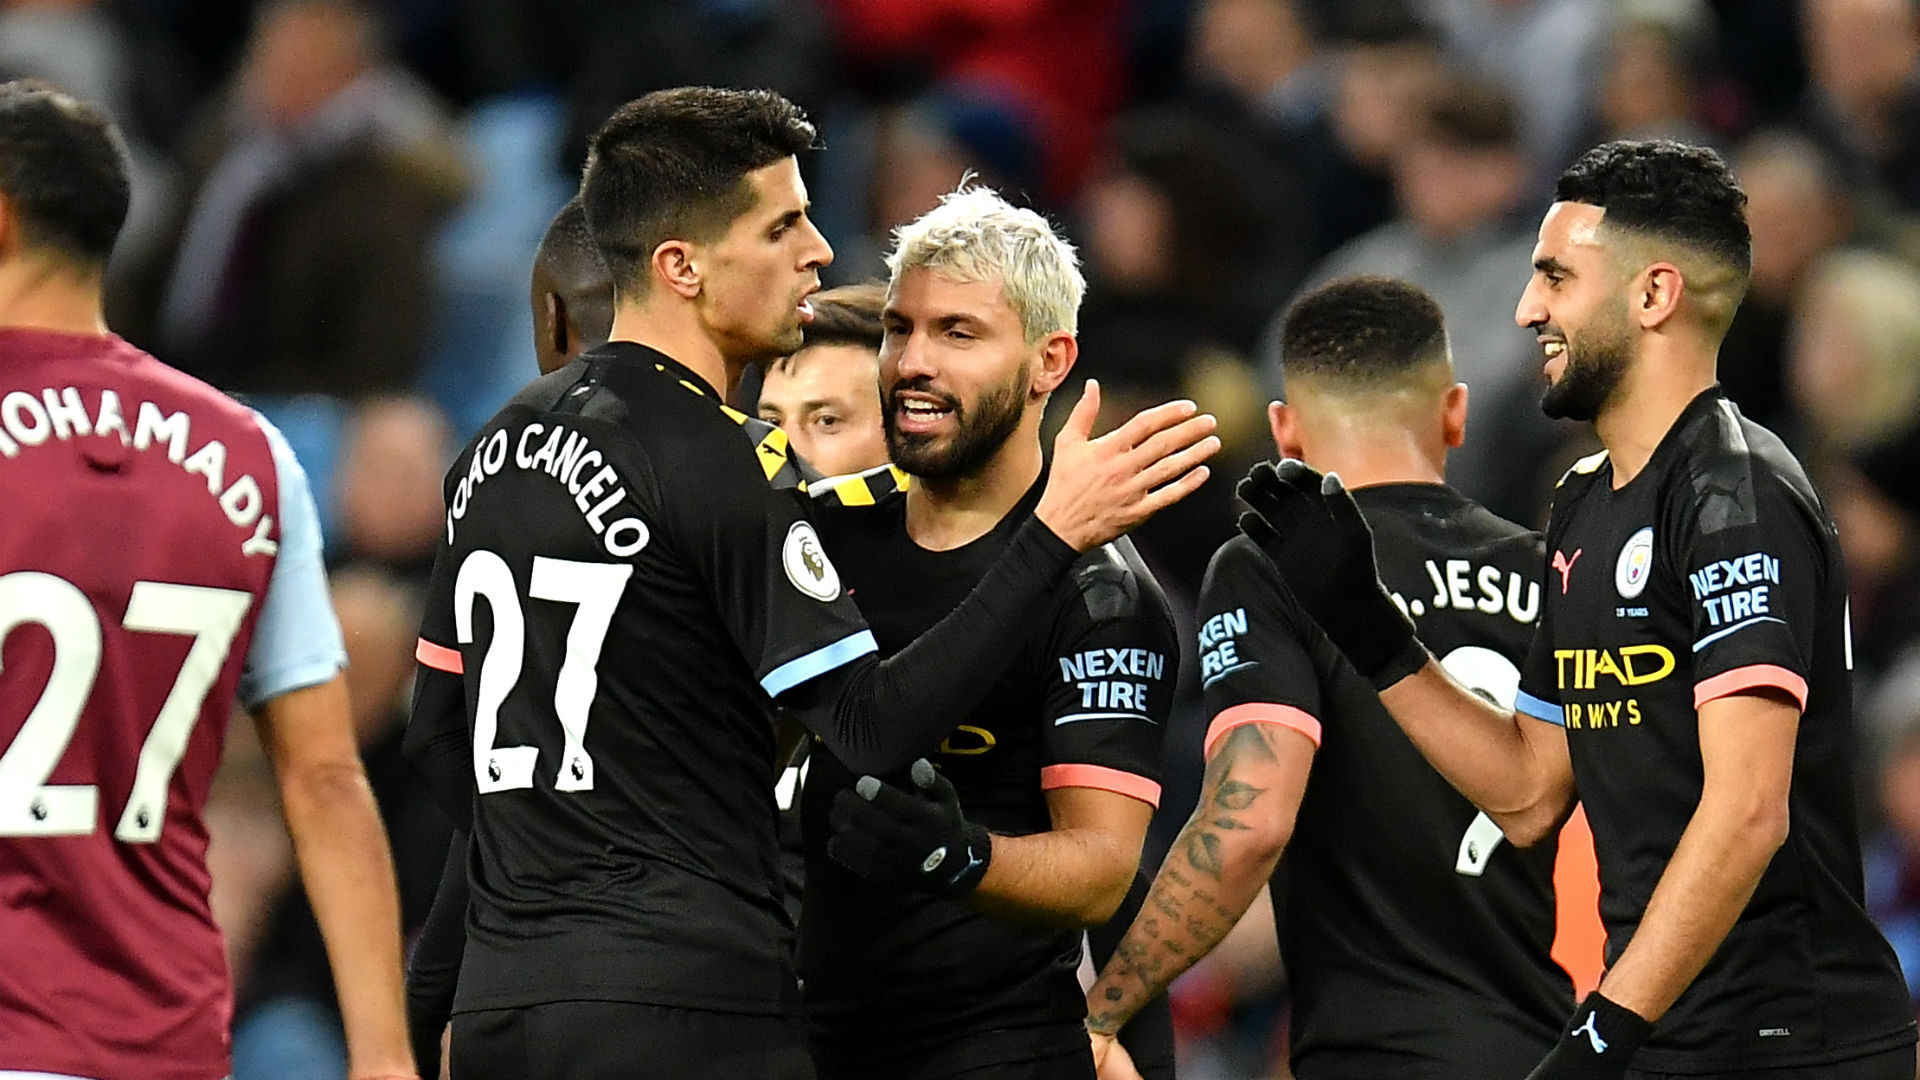 Manchester City's rout of Aston Villa allowed Sergio Aguero to climb above Thierry Henry in the Premier League record books.